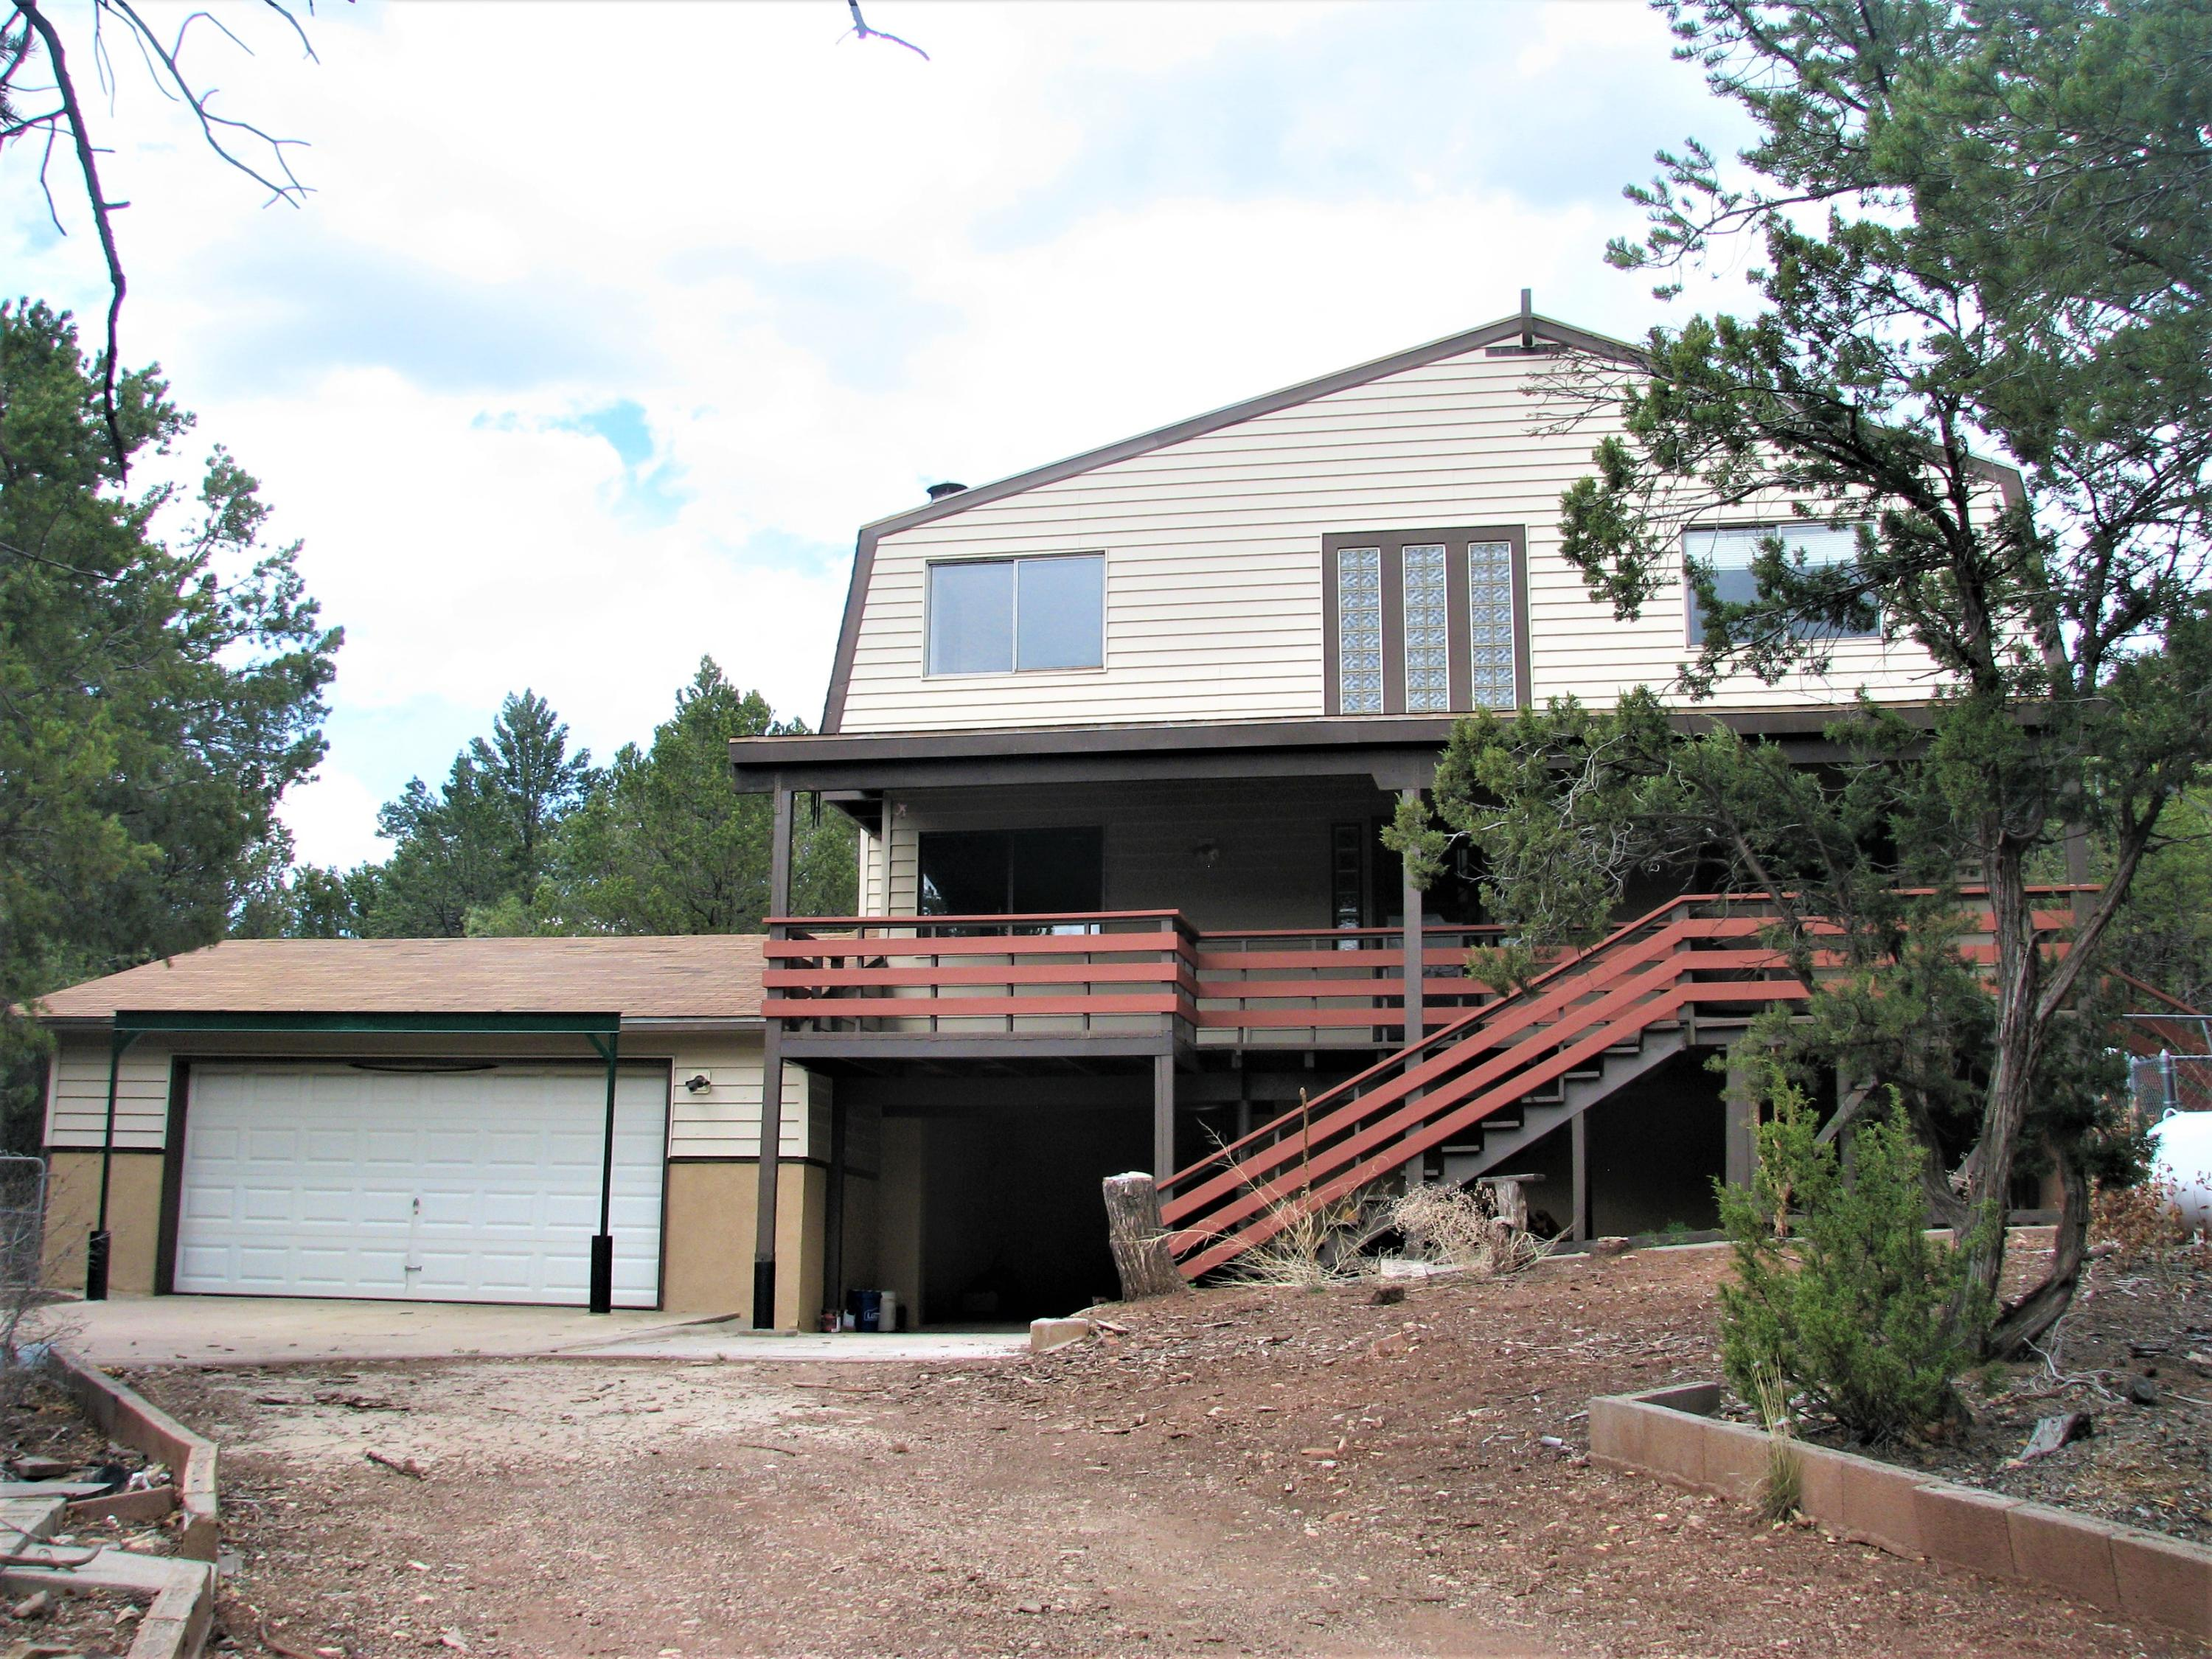 Awesome Mountain Getaway!Nestled among the Ponderosa Pines in the tiny New Mexico mountain community of Jemez Springs, this home is on a corner lot in the quiet, secluded and  scenic,  a mile north of Soda Dam.  Newly refurbished, with laminate flooring throughout.  A new septic system. Bathed in natural light,  a circular staircase, a 30 foot front porch with breathtaking views upstairs and downstairs. The home features three heating sources: a wood-burning stove, propane wall heater, and baseboard heaters and four ceiling fans. The large two-car garage is well-lighted,  and  an attic and shelving for a large home workshop, & Carport! The unfinished basement utility room has washer/dryer hookup, water heater, and is stubbed for a third toilet. Fenced. One mile walk to the riv